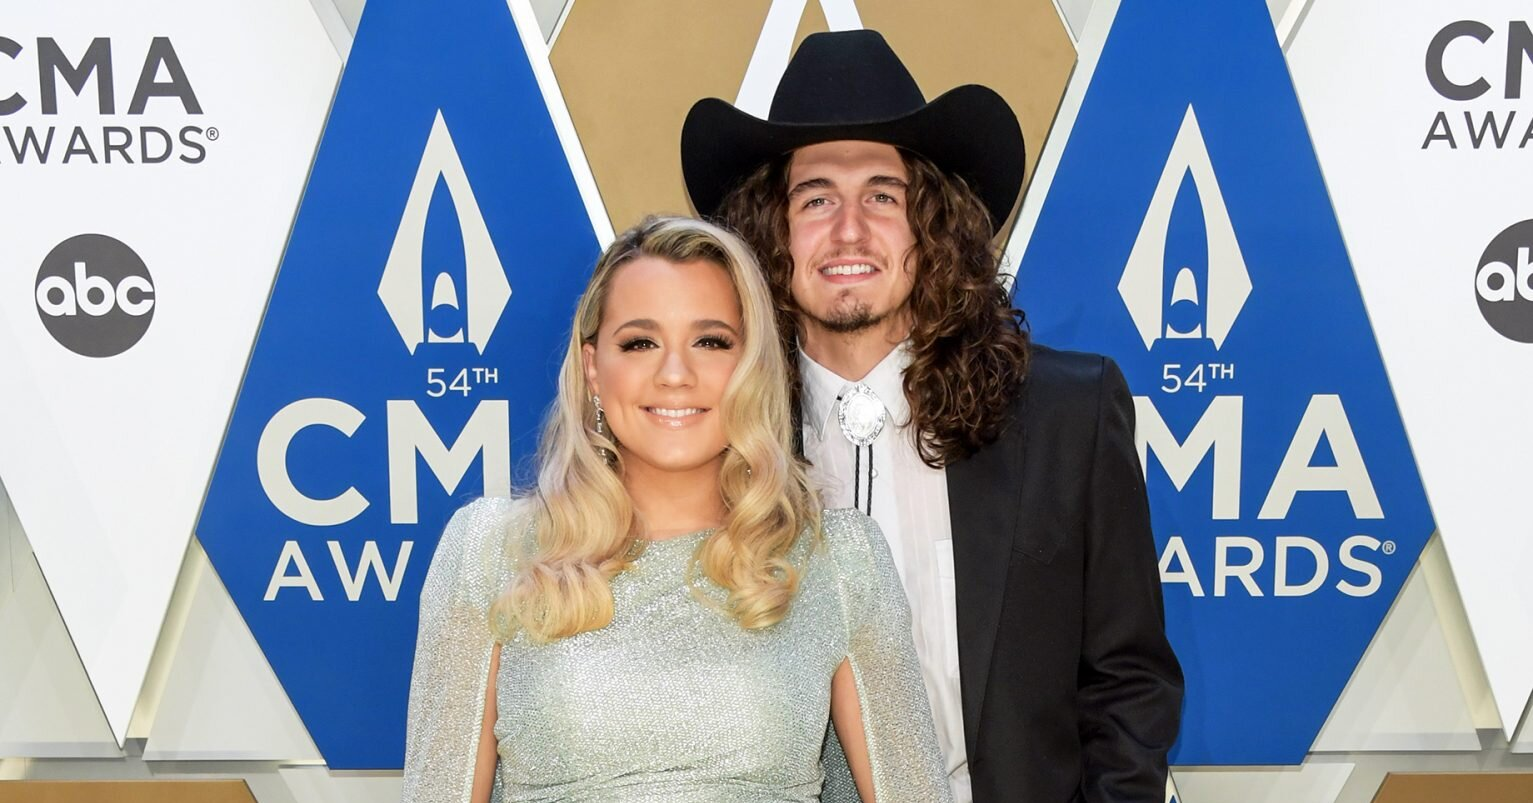 Pregnant Gabby Barrett Says Husband Cade Foehner Rubs Her Feet 'Every Single Night'